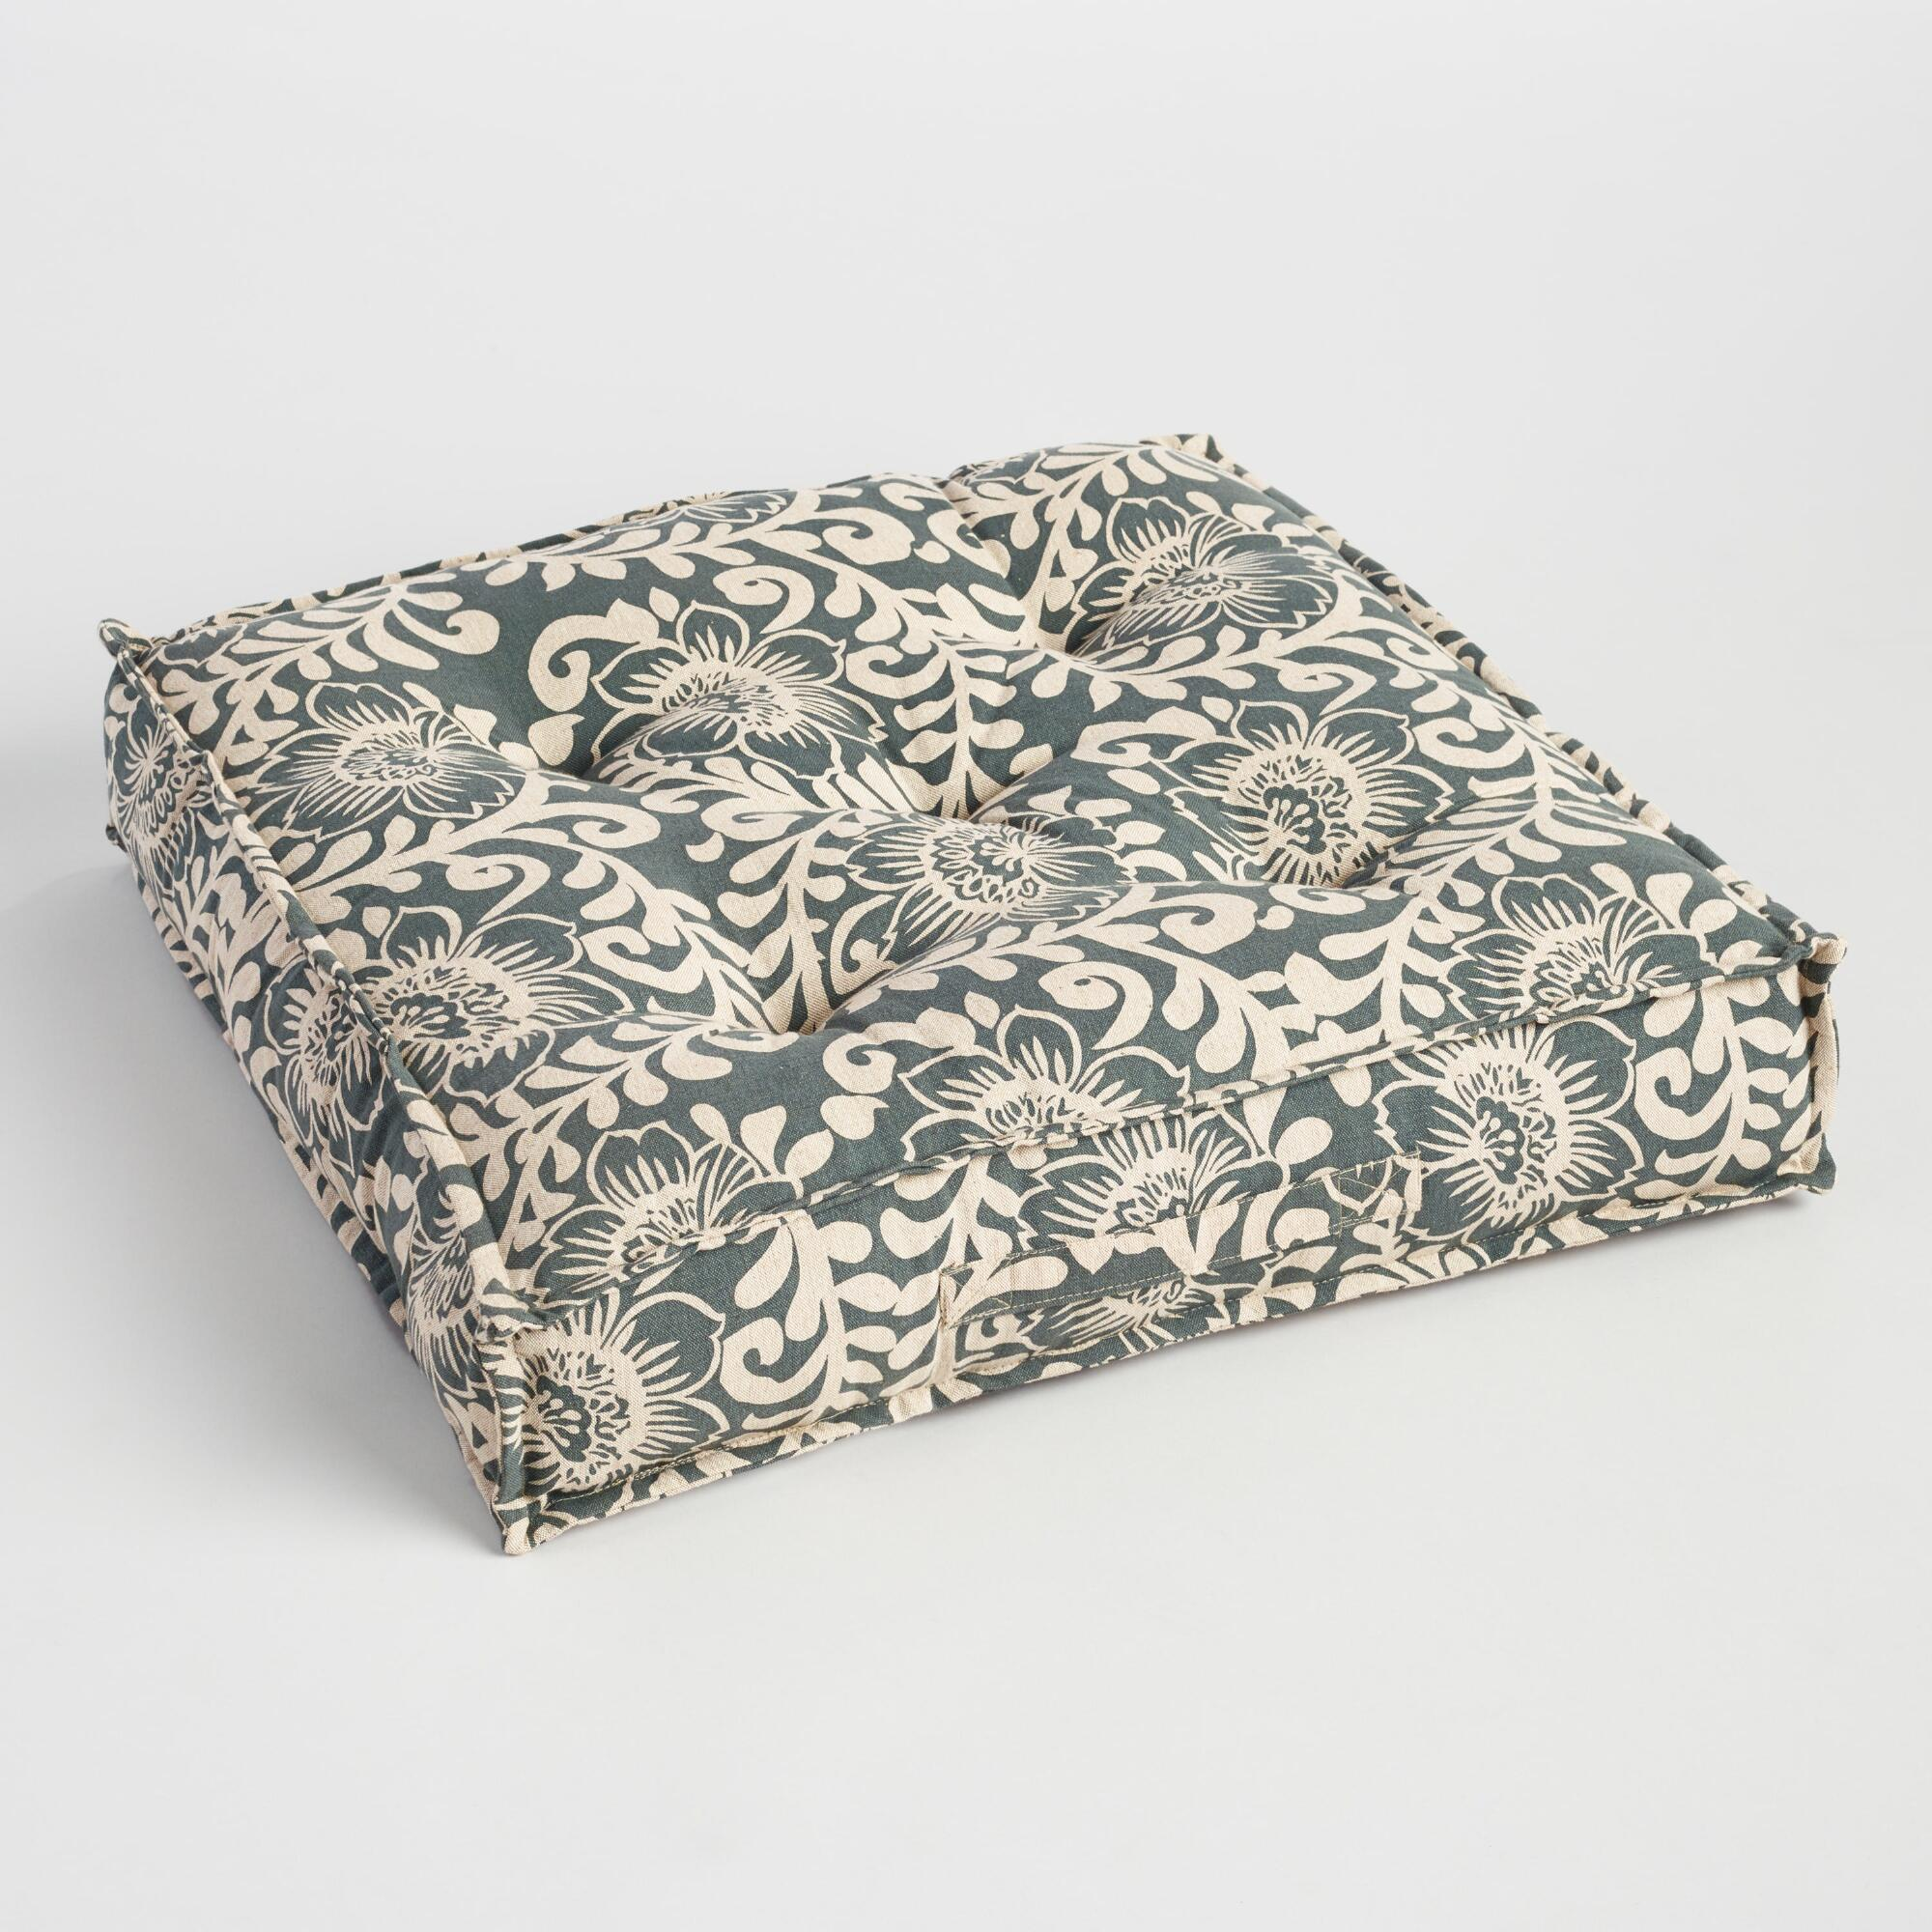 Floor Cushions Or Pillows : Wild Hibiscus Tufted Floor Cushion World Market